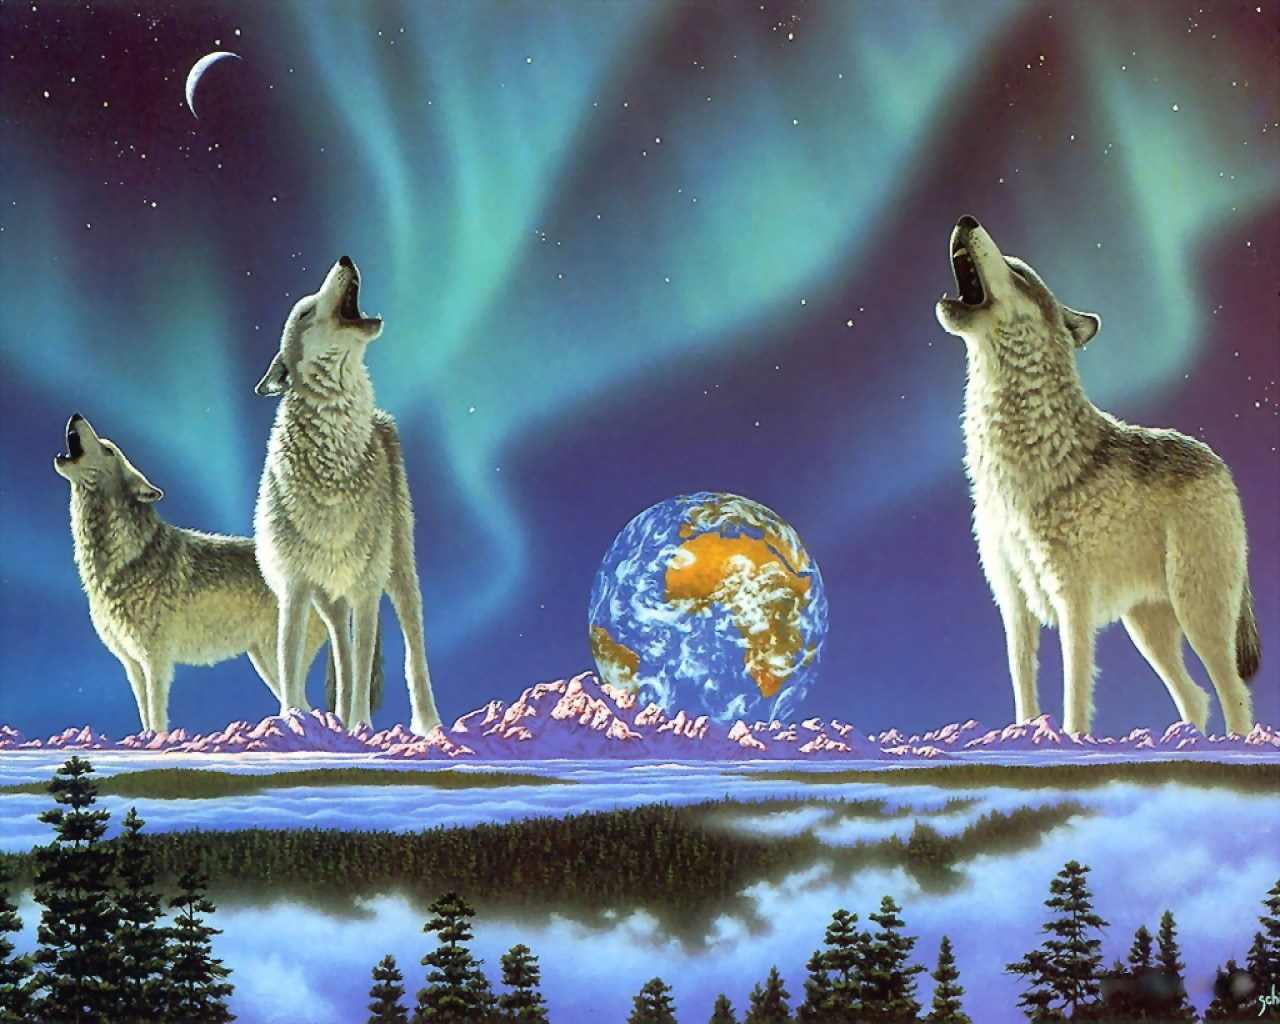 13047 download wallpaper Animals, Wolfs screensavers and pictures for free